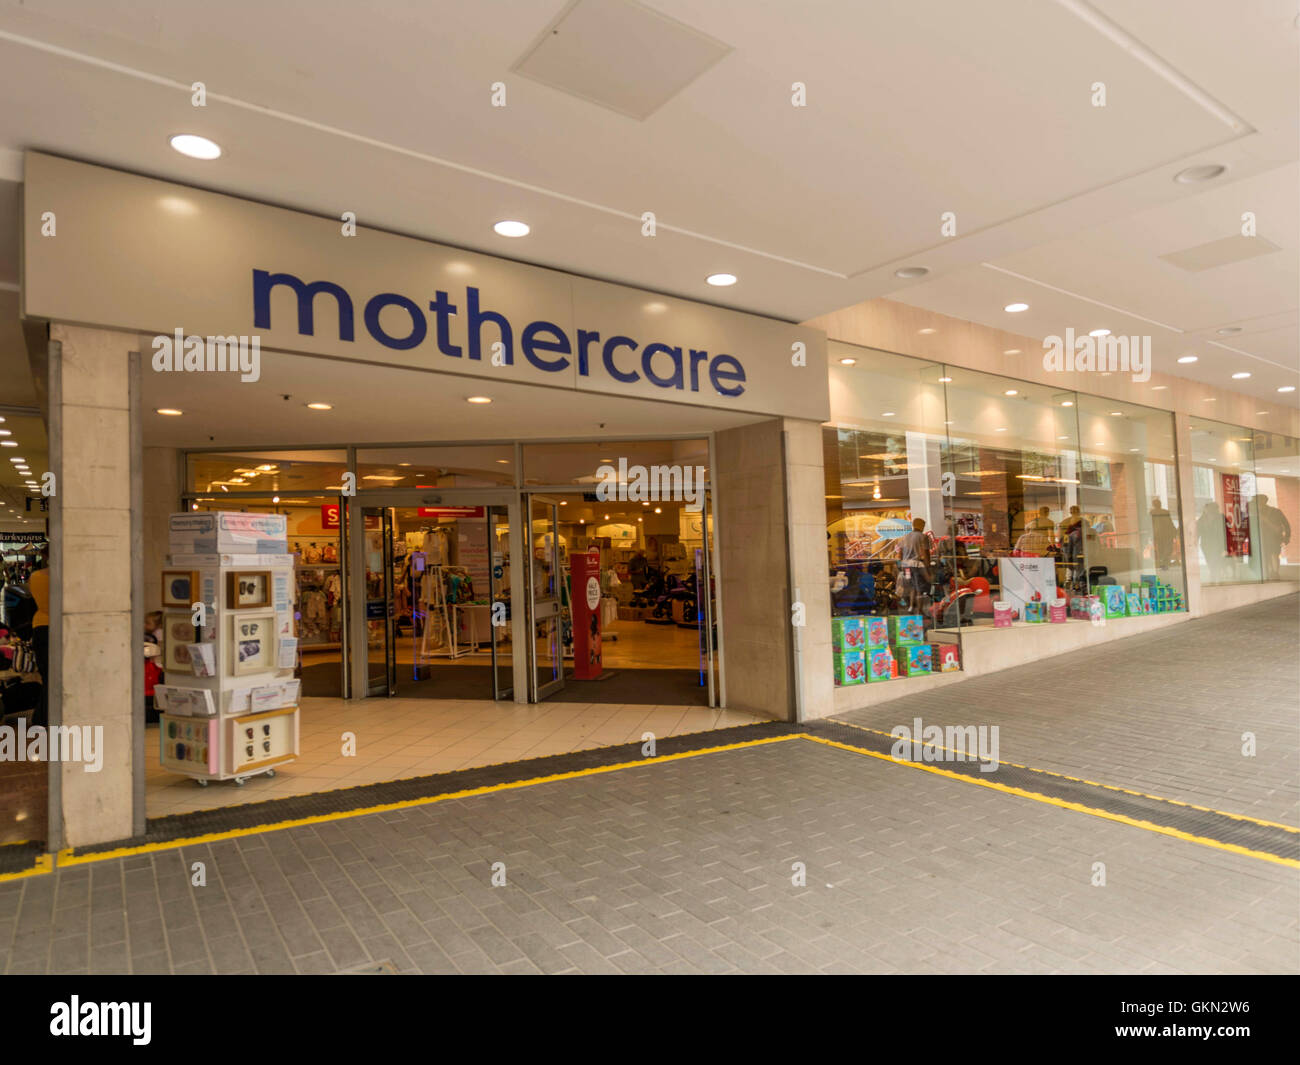 Mothercare Retail Outlet, Exeter City Centre, Devon - Stock Image